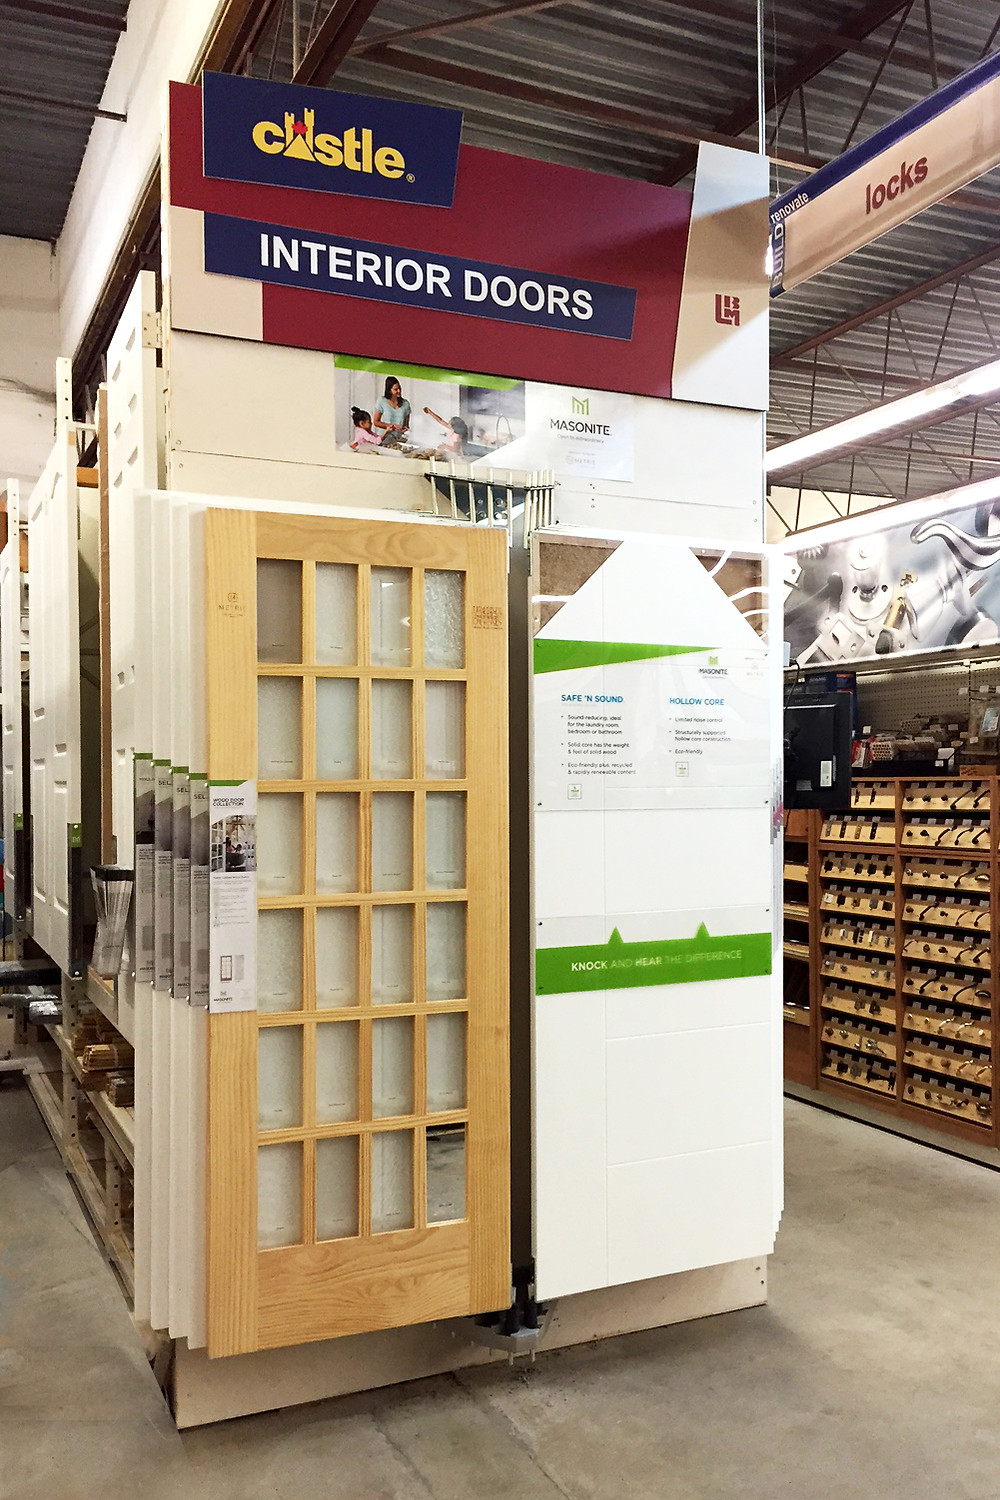 10 Wing wall-mounted door display system for in-bay, rack, showroom